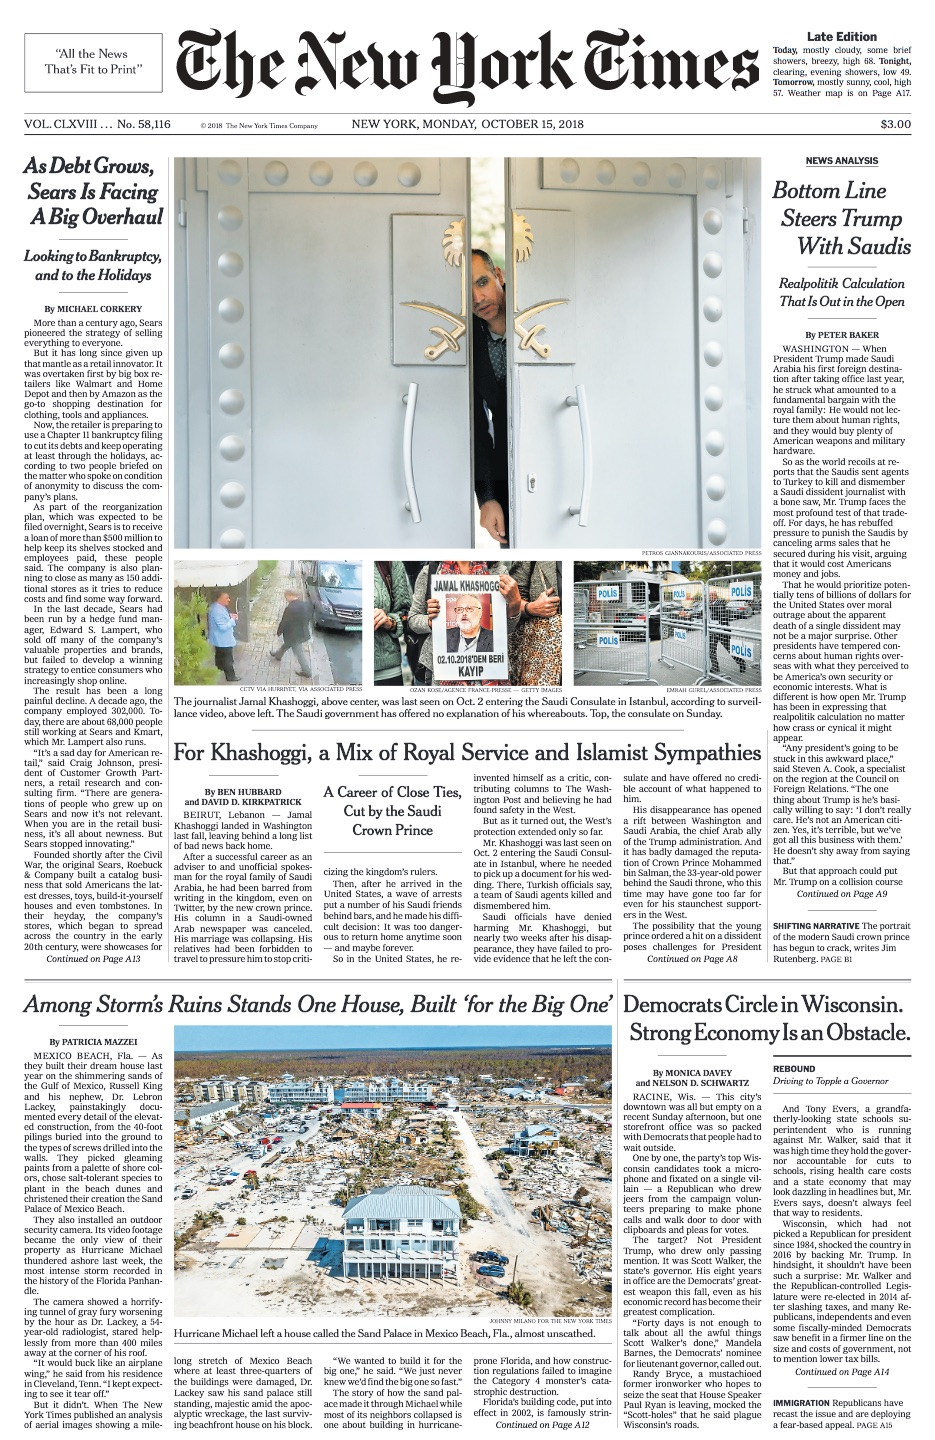 NYT_FrontPage_101518.jpg